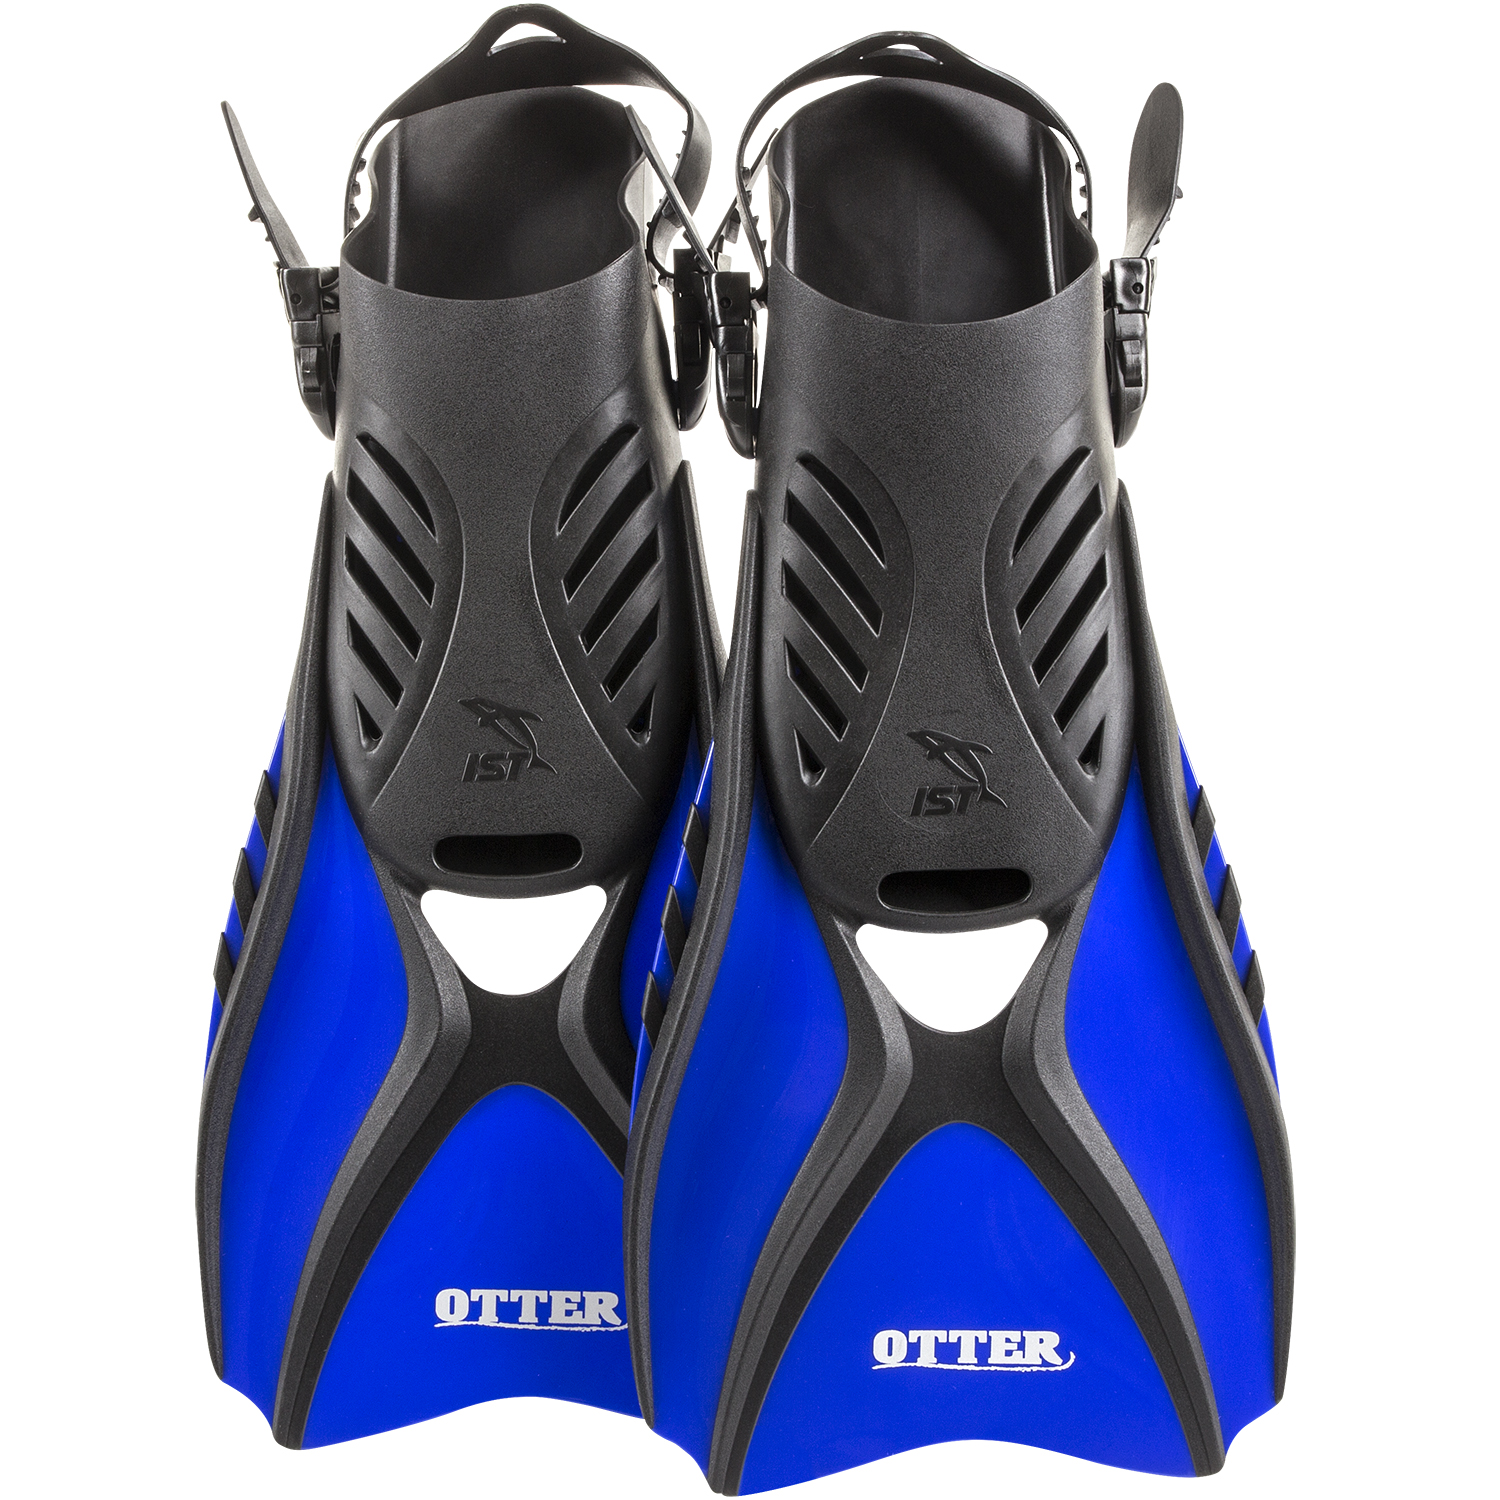 IST FK31 OTTER Trek Swim Fins, Short Compact Snorkeling Flippers with Open Heel & Adjustable Straps for Travel (Blue,... by IST